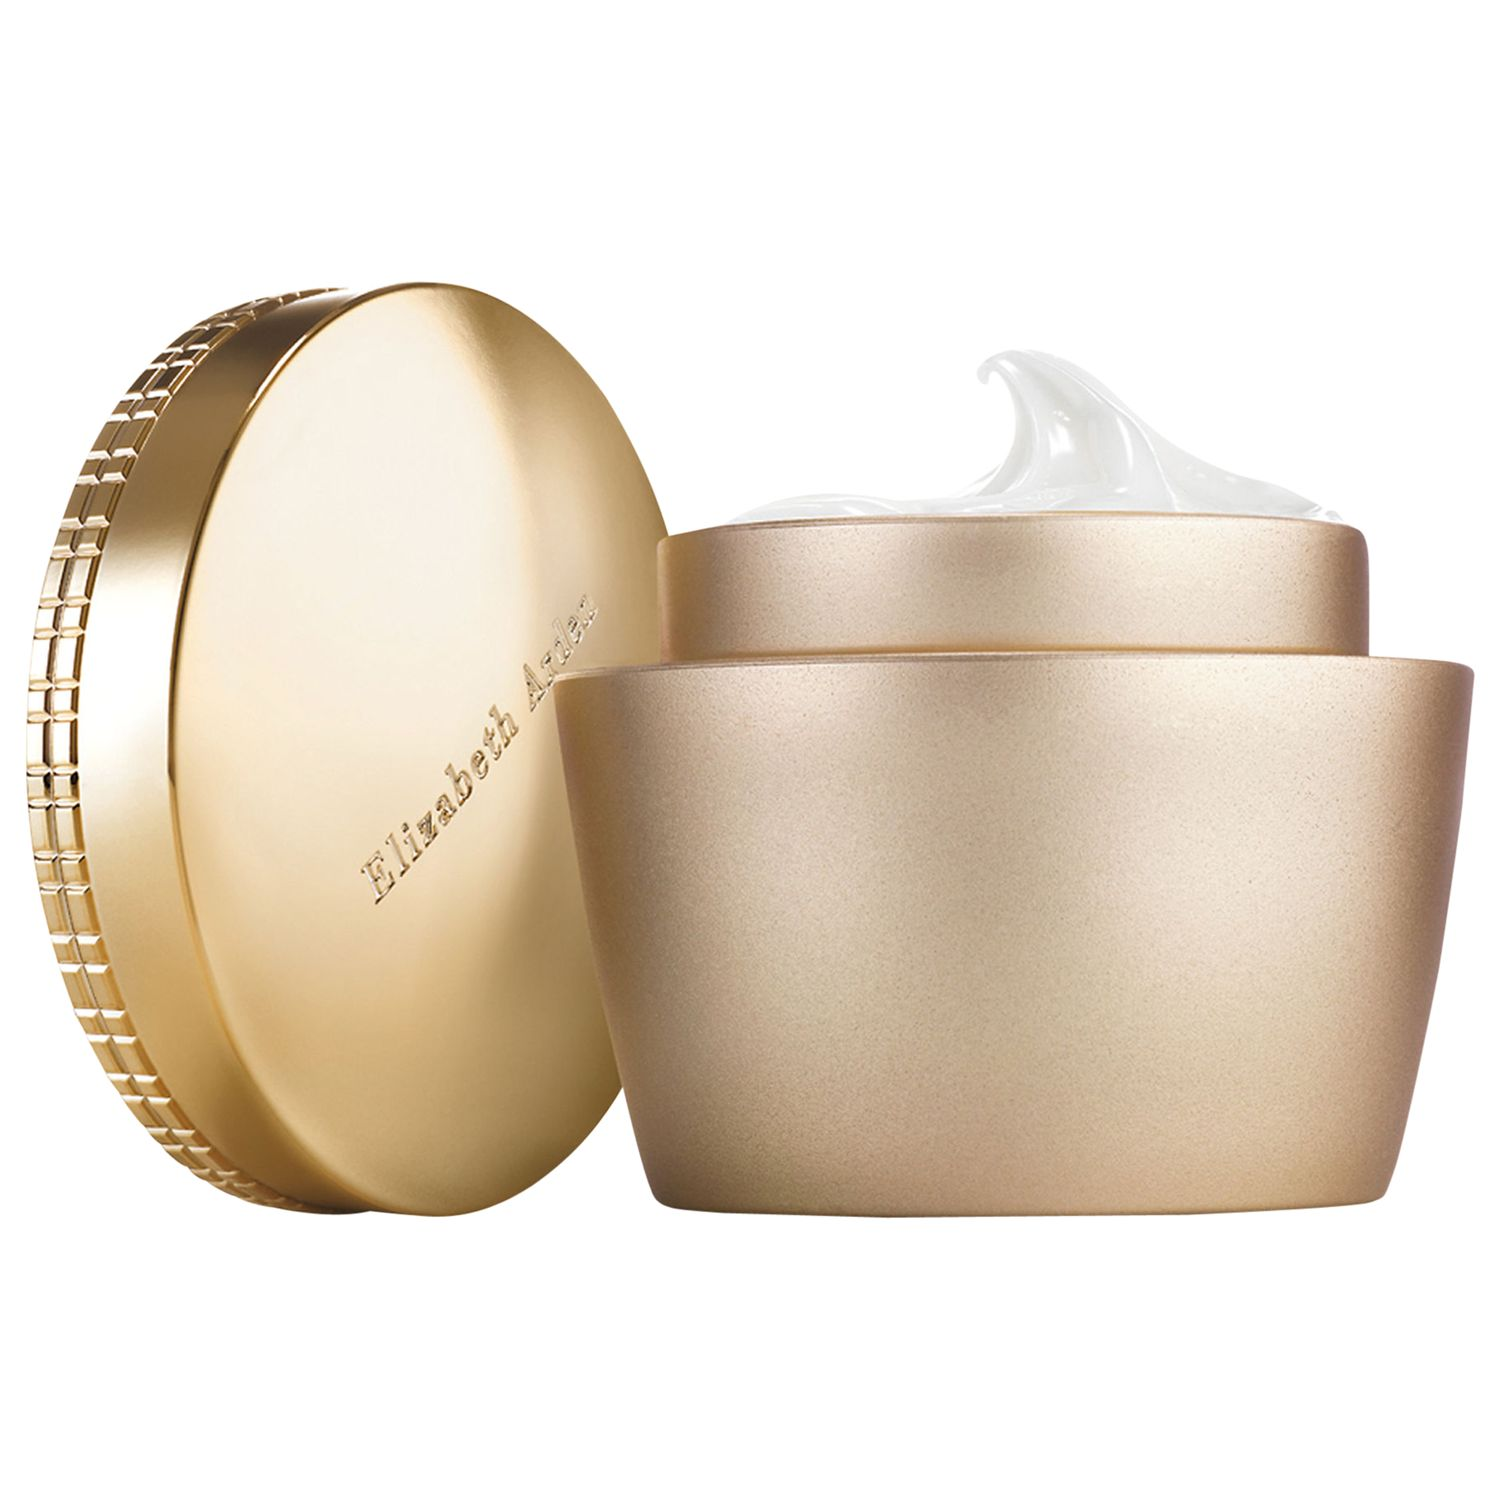 Elizabeth Arden Ceramide Premiere Intense Moisture and Renewal Activation Cream SPF 30 PA++ 50ml